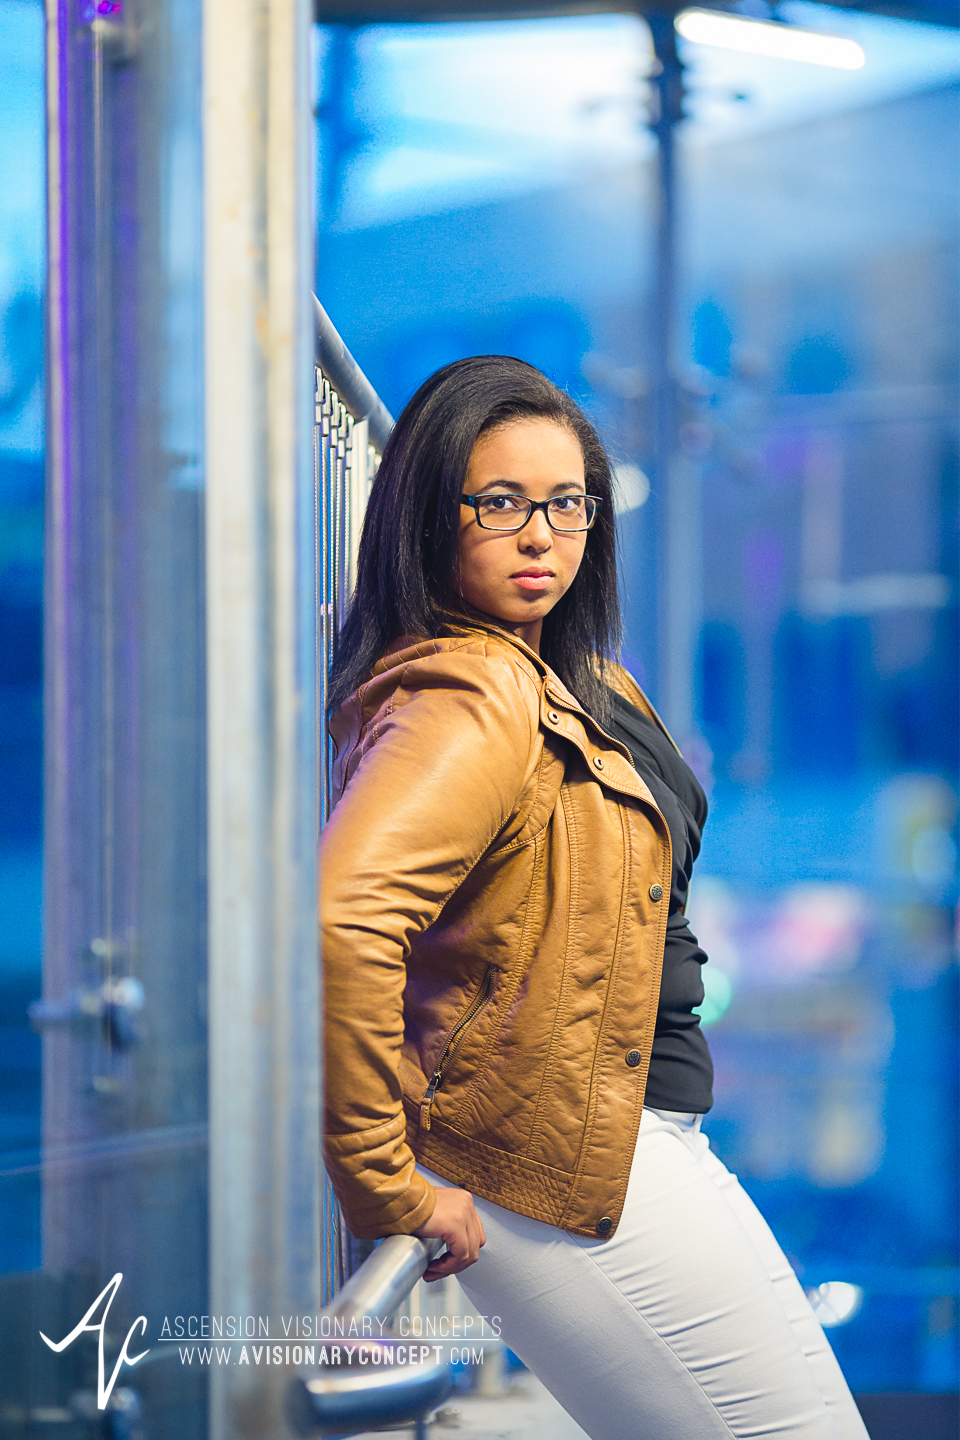 Buffalo Senior Photography 17 - Class of 2015 Summer Photography Downtown Buffalo African American Teenage Girl.jpg